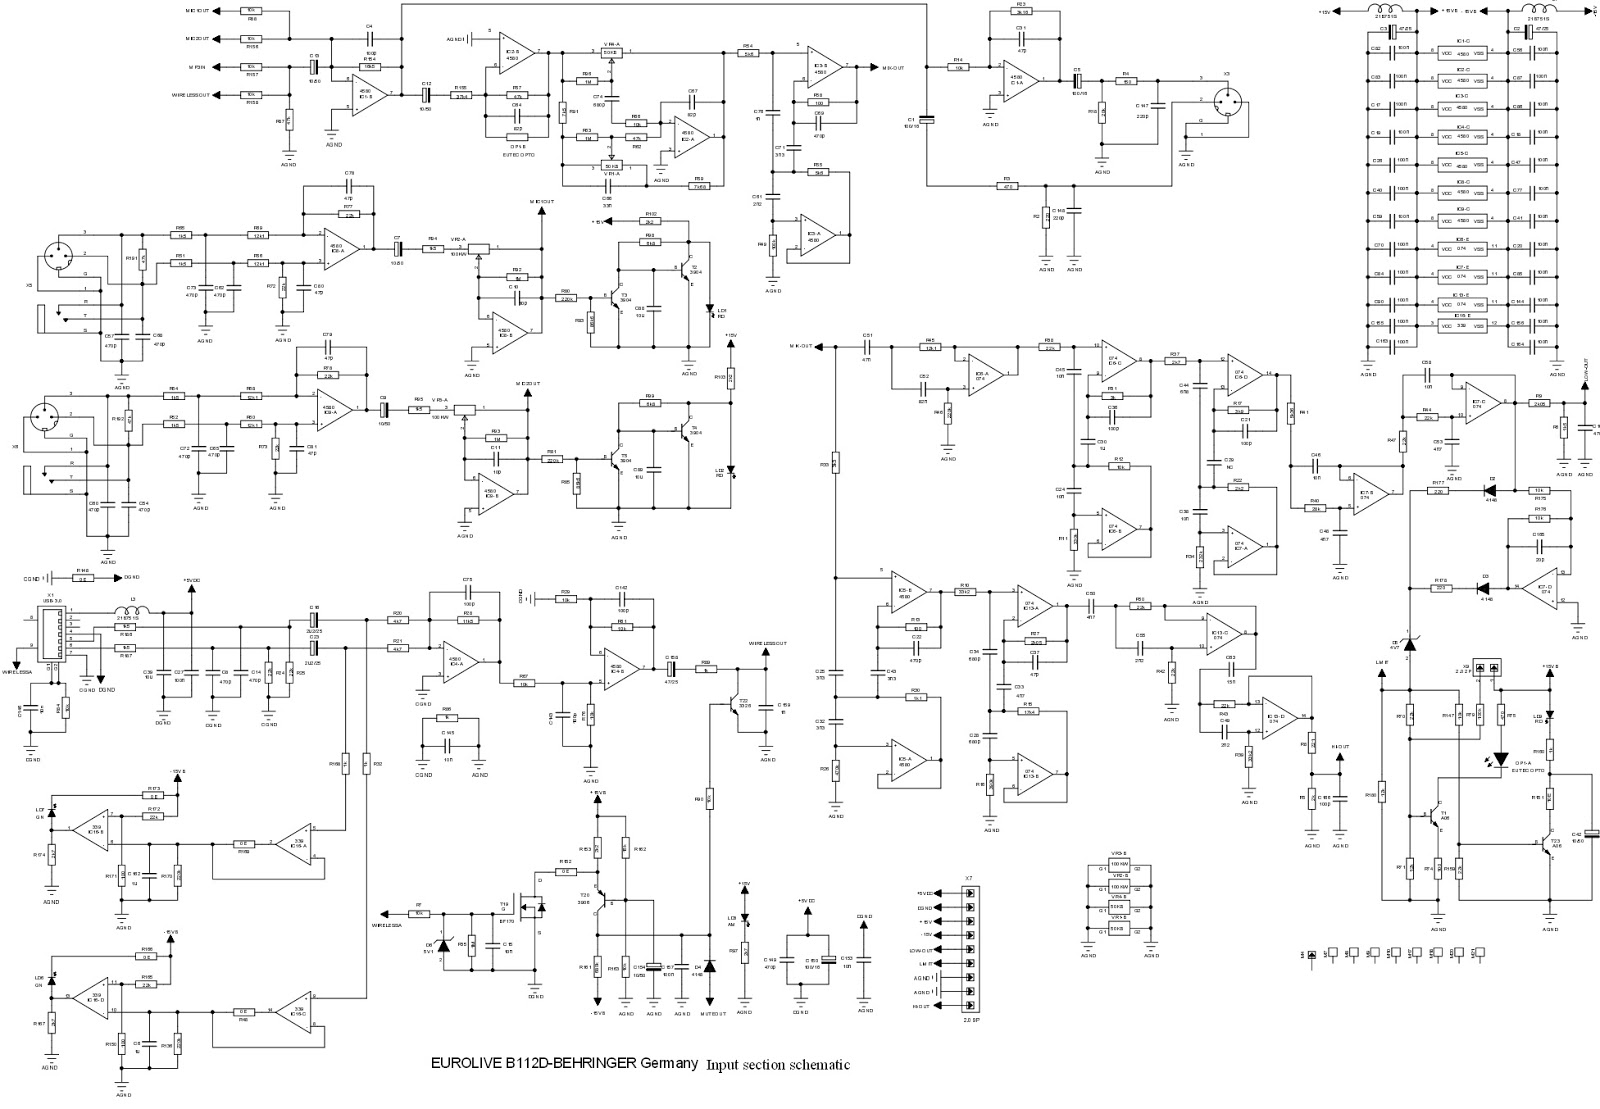 small resolution of behringer pa system wiring diagram pa system setup diagram pa pa eurolive b112d behringer germany